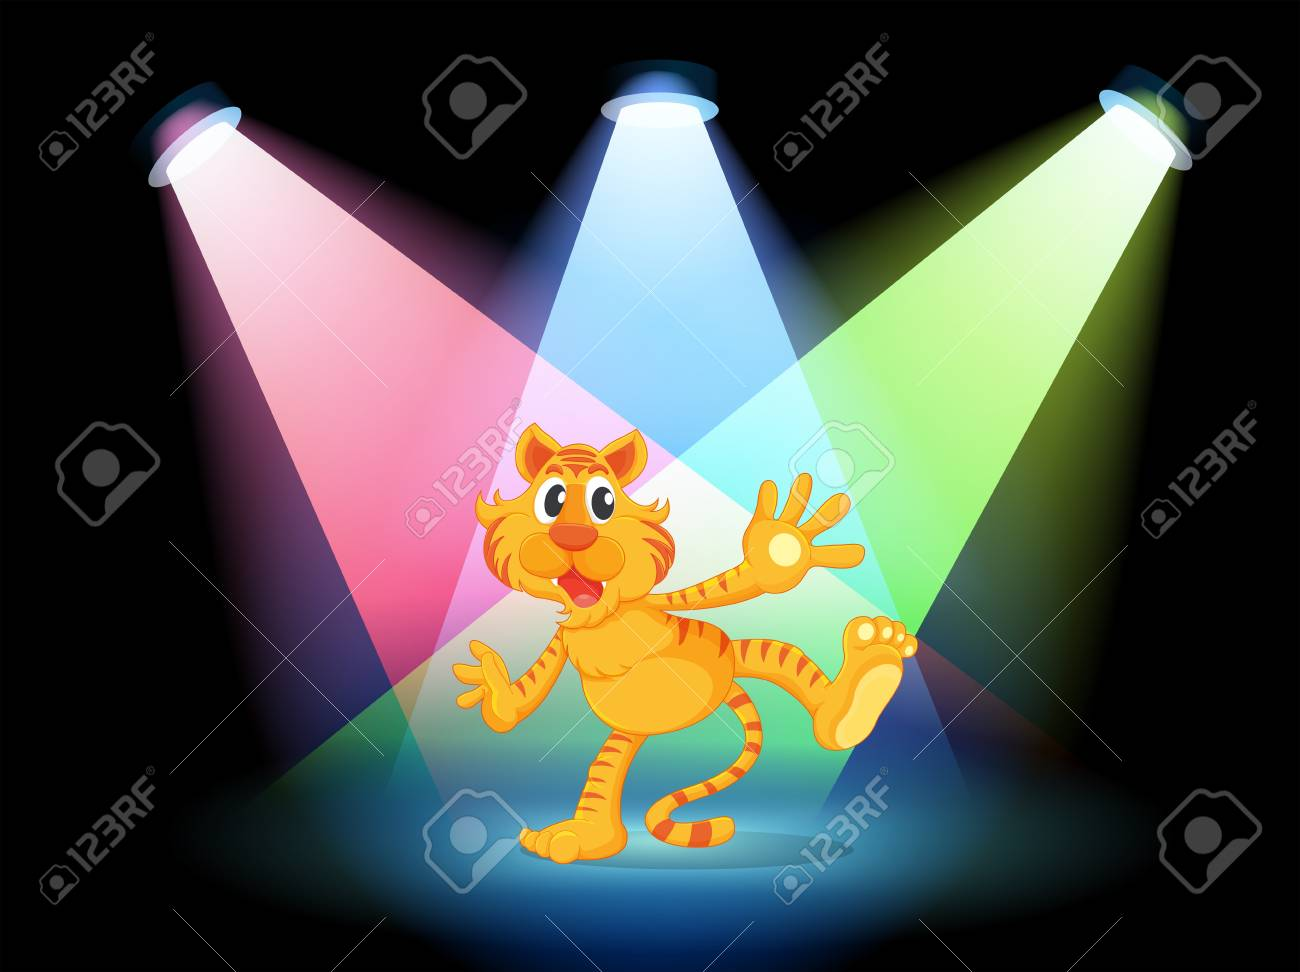 Illustration of a tiger in the middle of the stage Stock Vector - 19874407